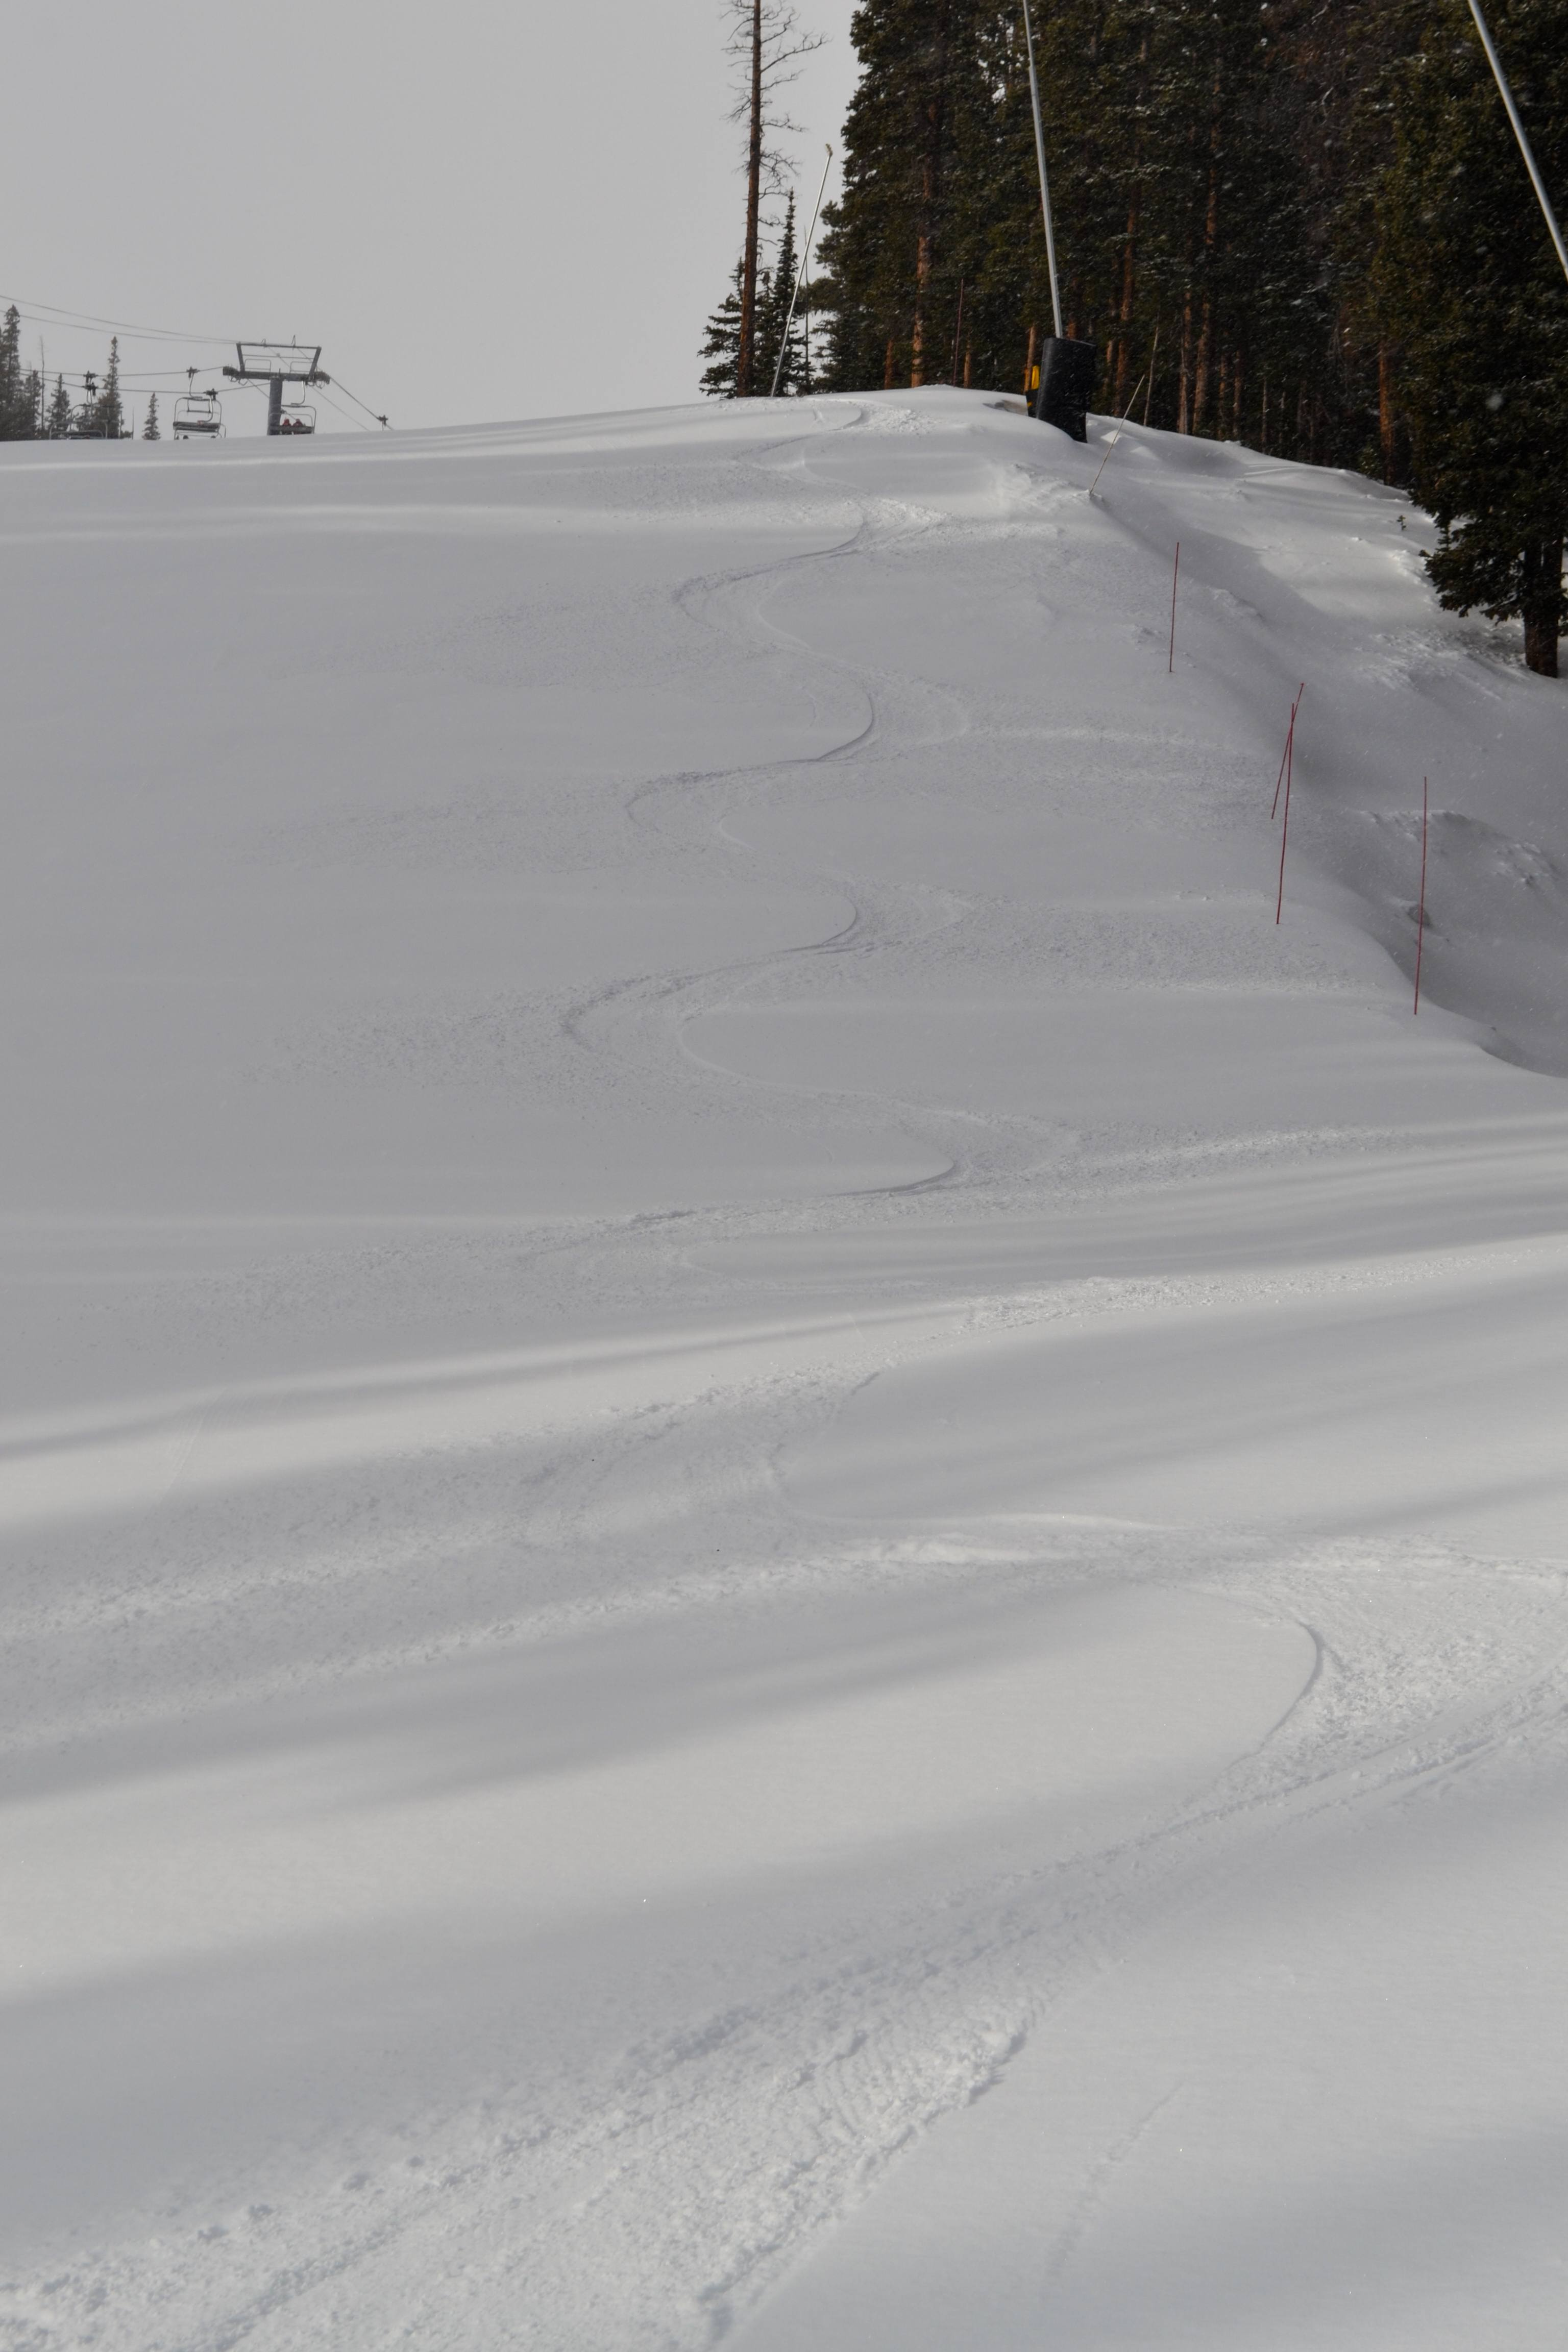 Powder turns at Breck